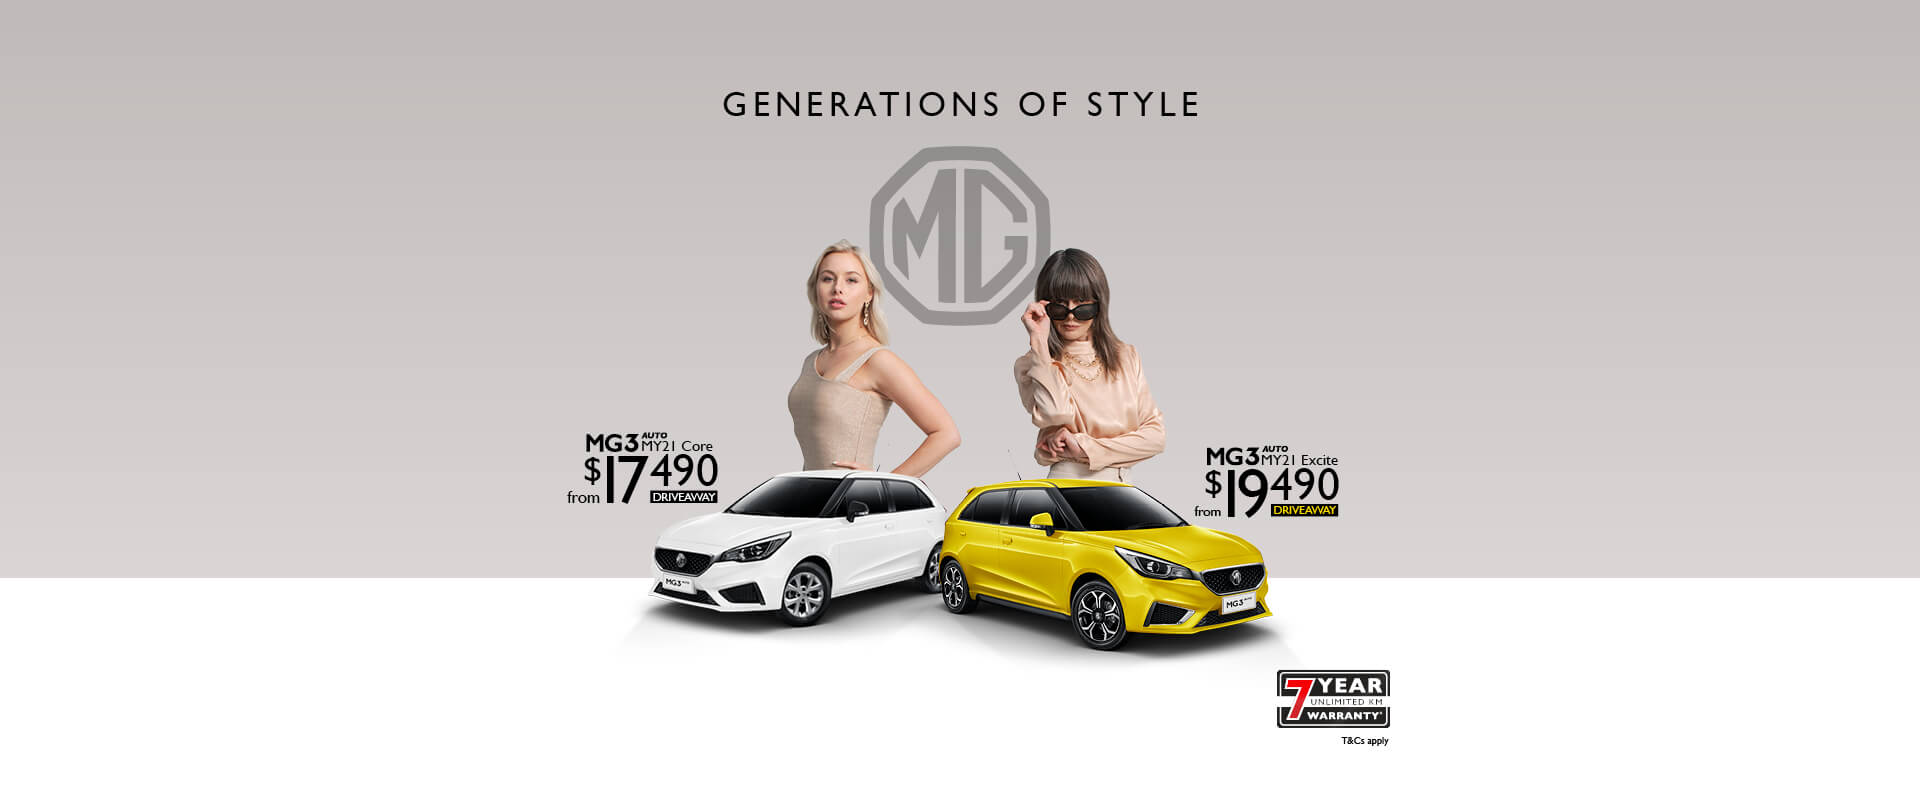 MG3 Generations of Style